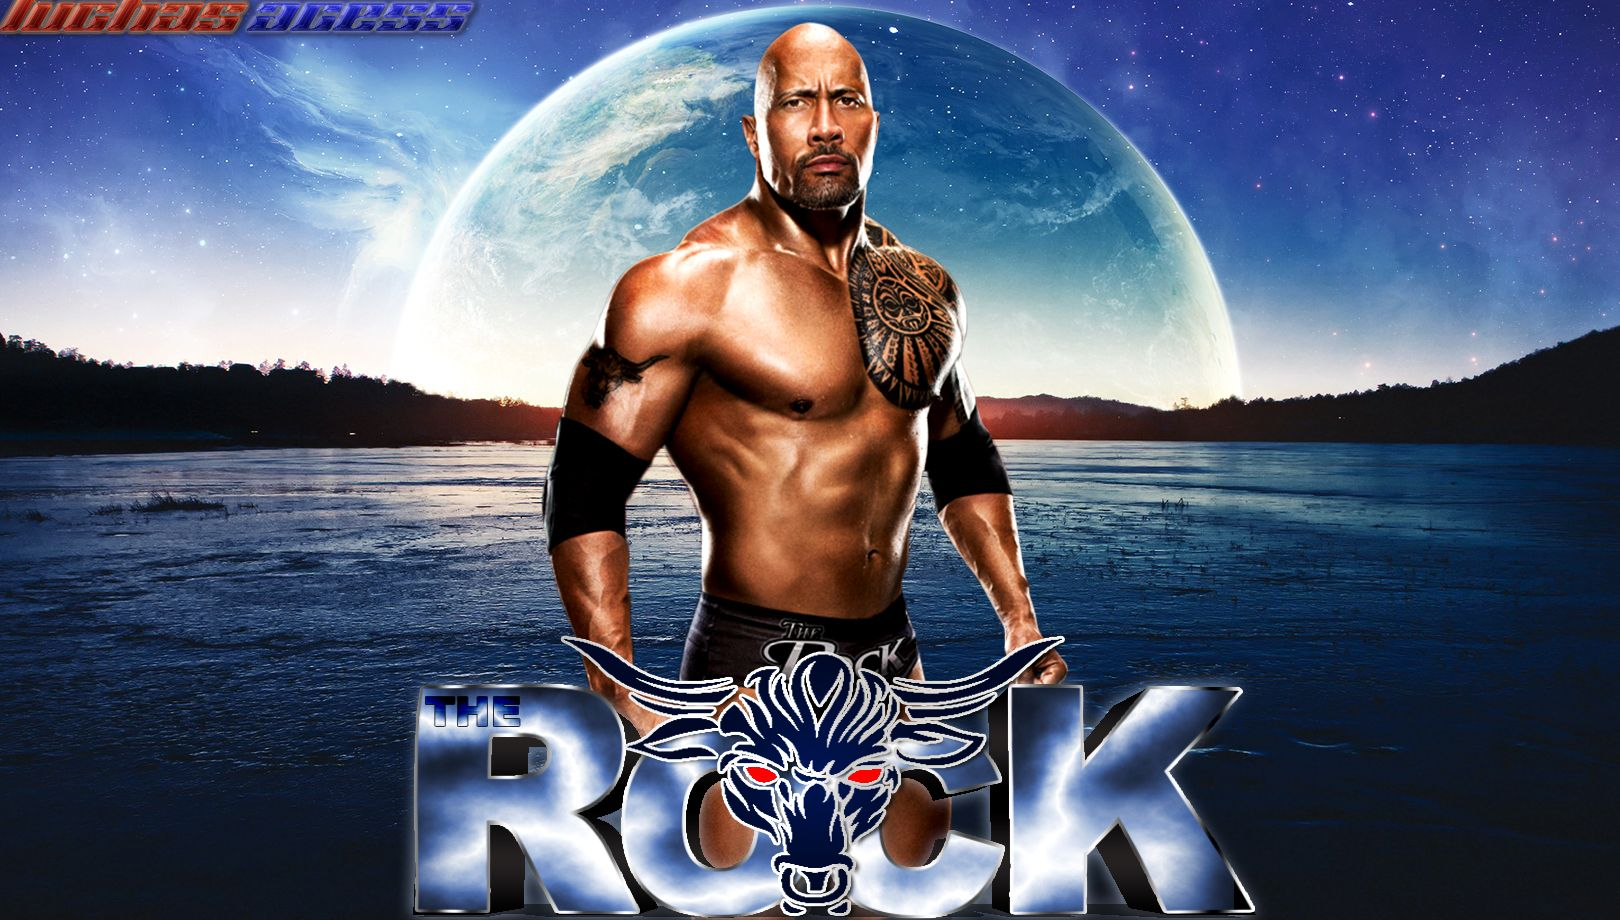 Wallpaper the rock 2013 rock wallpaper and cm punk wallpaper the rock 2013 cm punkwallpaper free downloadthe voltagebd Image collections